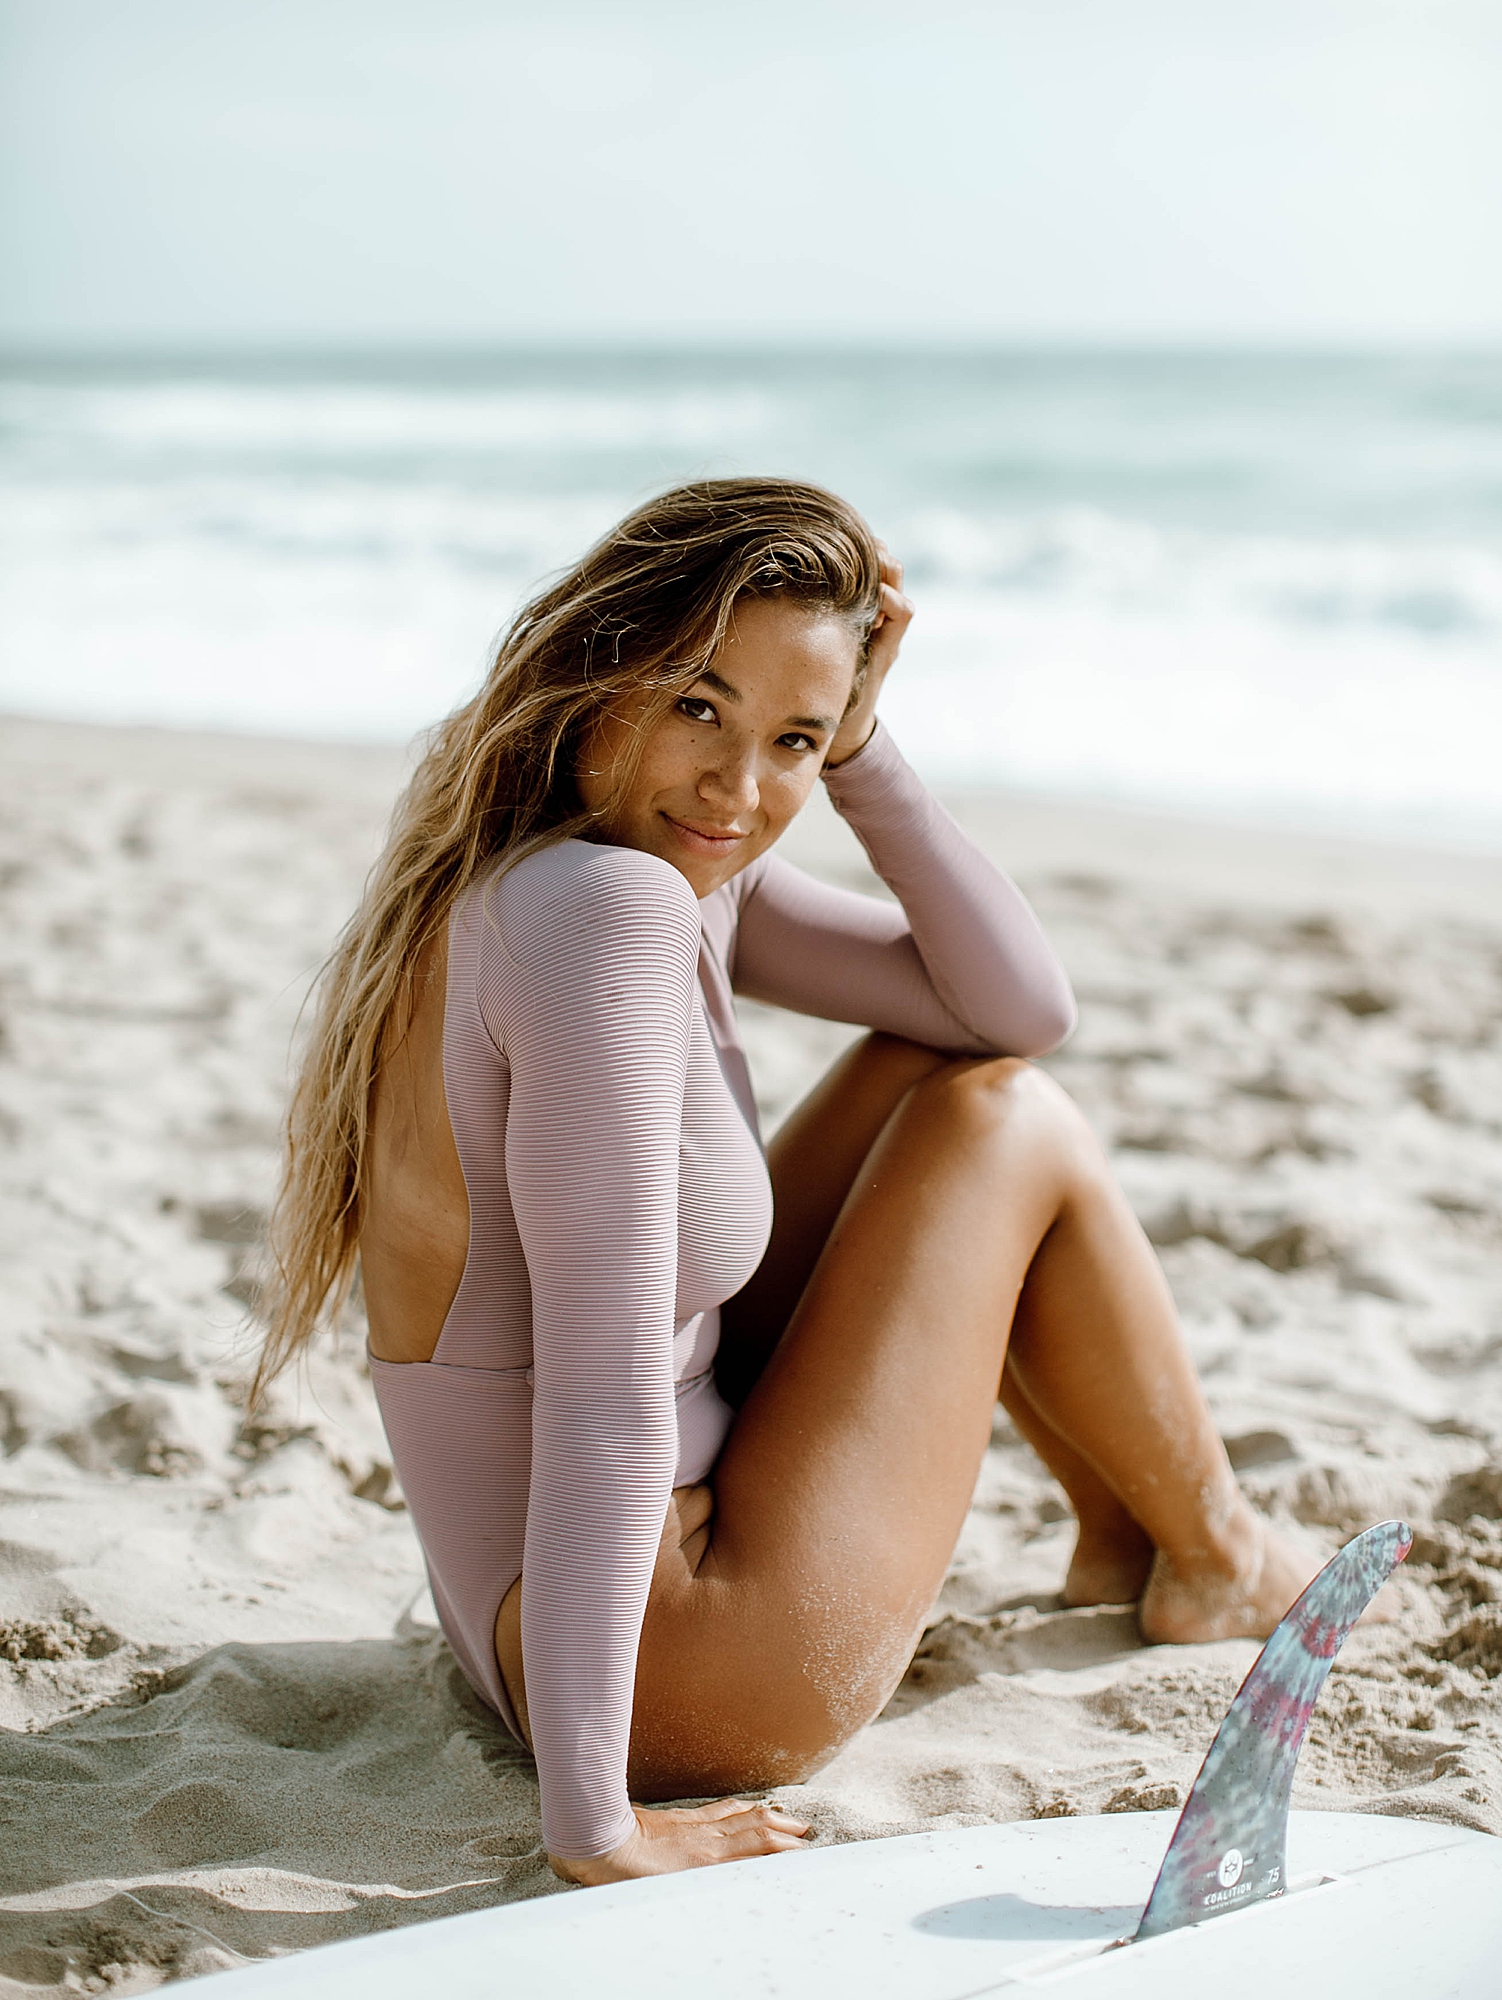 Southern California Surf and Lifestyle Fashion Photographer Kelee Bovelle @keleeb X Eryn Krouse @erynkrouse_0020.jpg